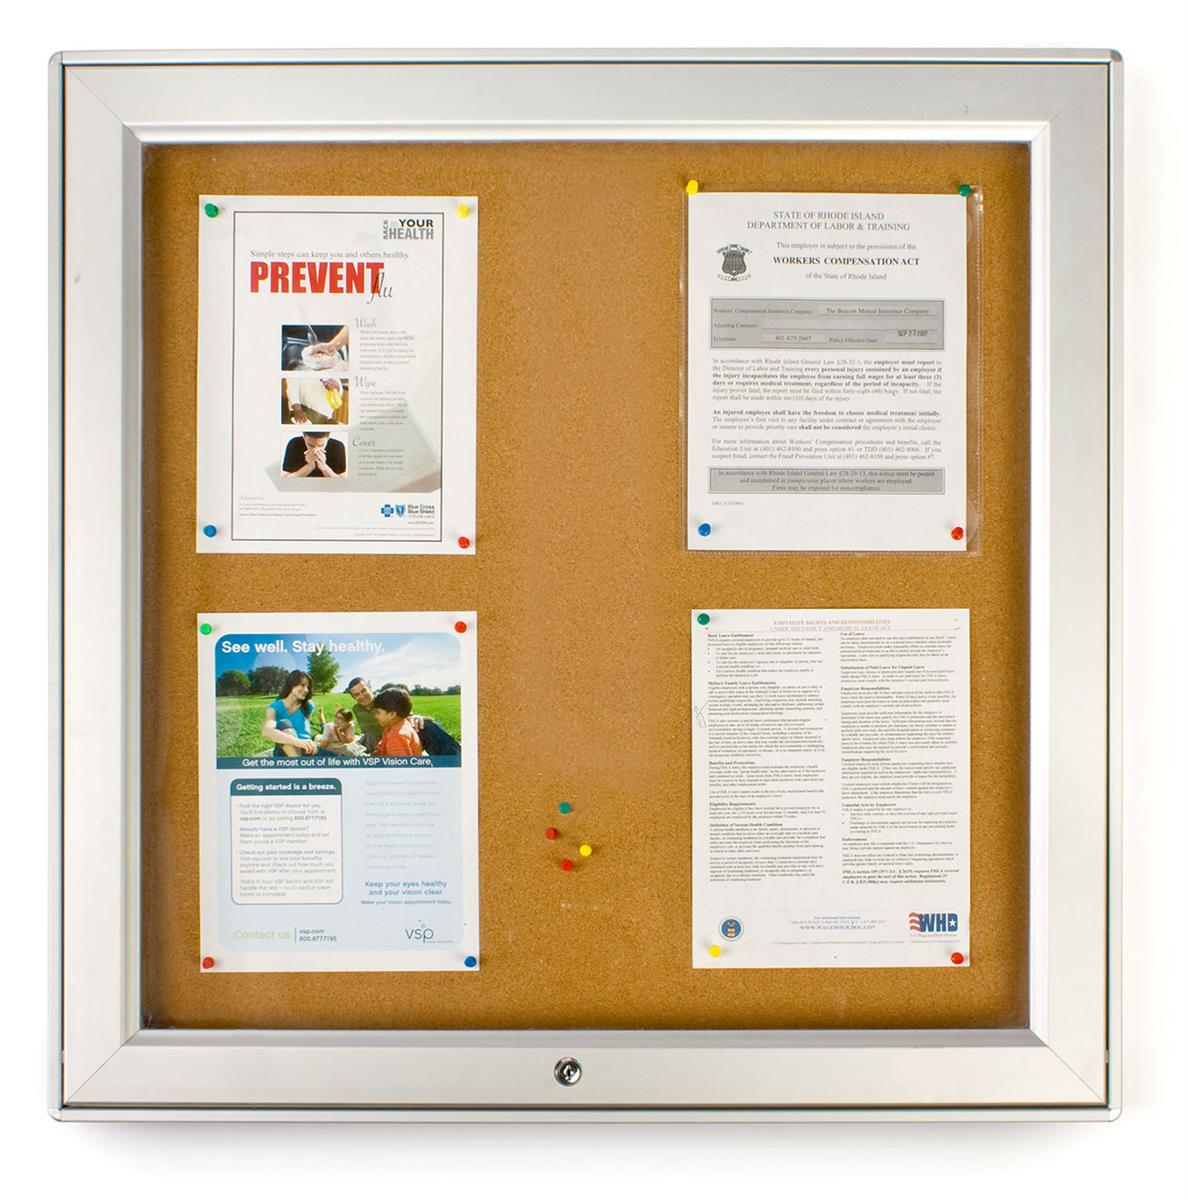 Aluminum Wall-Mounted Enclosed Bulletin Board for Outdoor Use, 26.75 x 26.75, Natural Cork Board Surface - Silver (ODNBCB6UP)